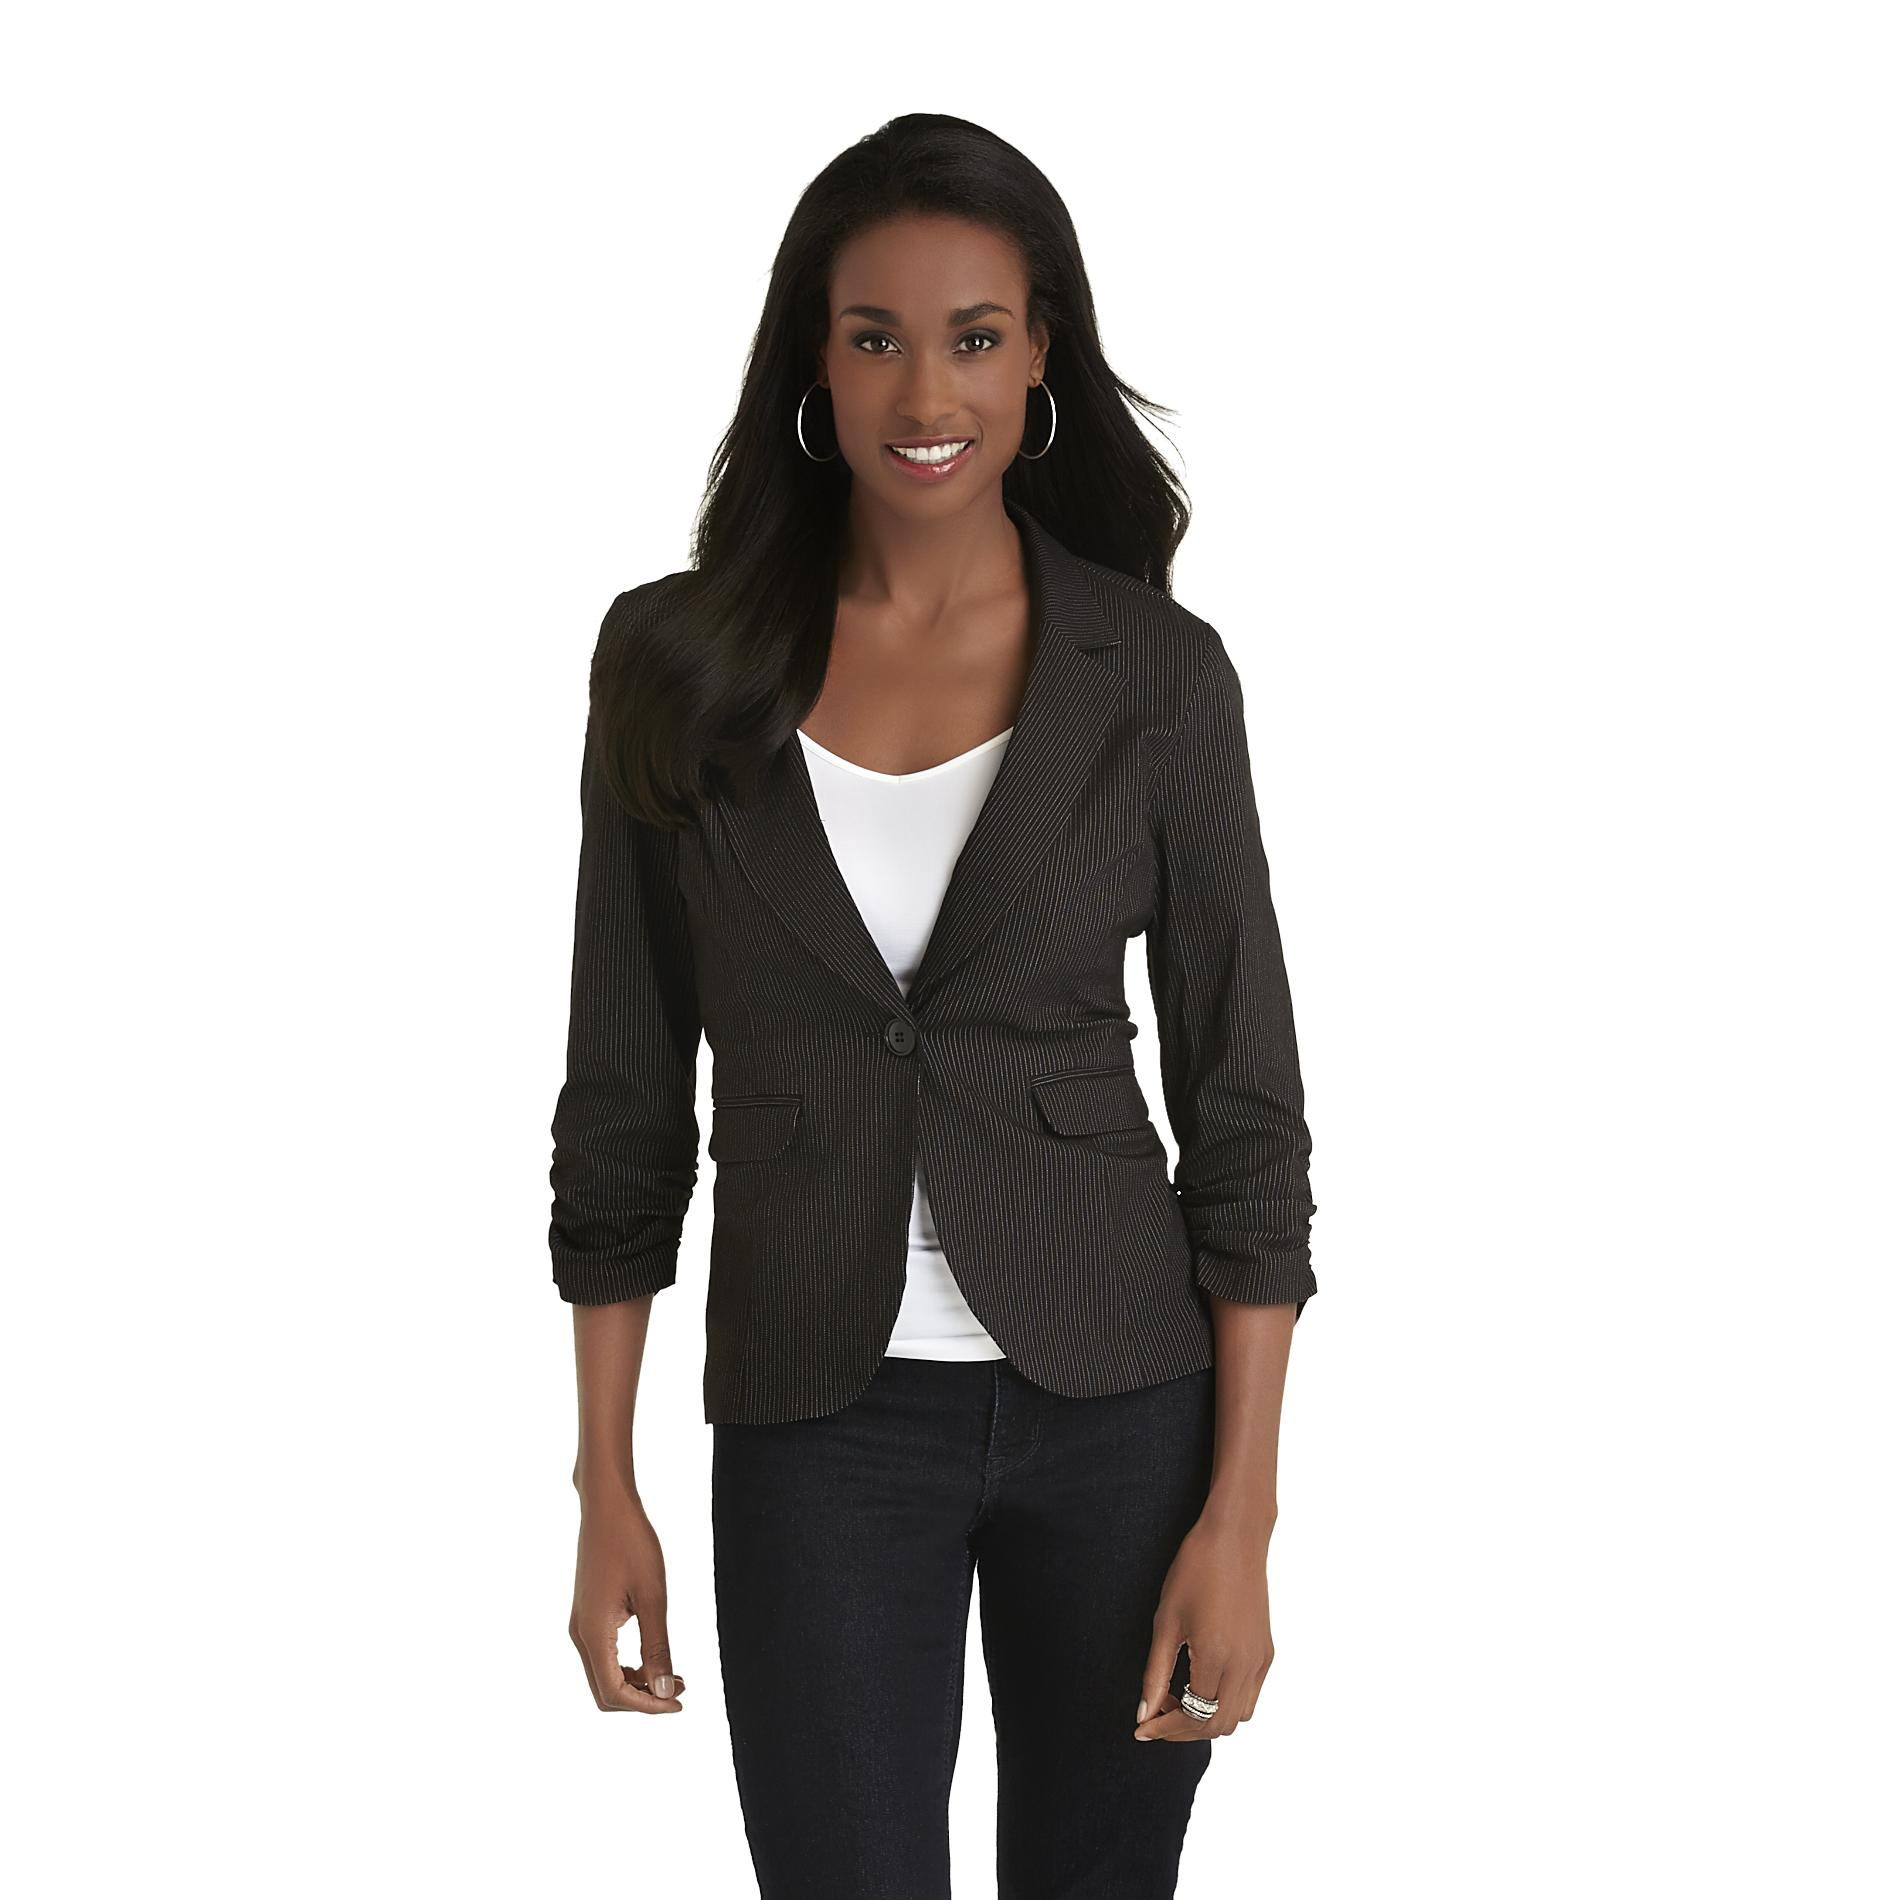 Metaphor Women's Blazer - Pinstriped at Sears.com